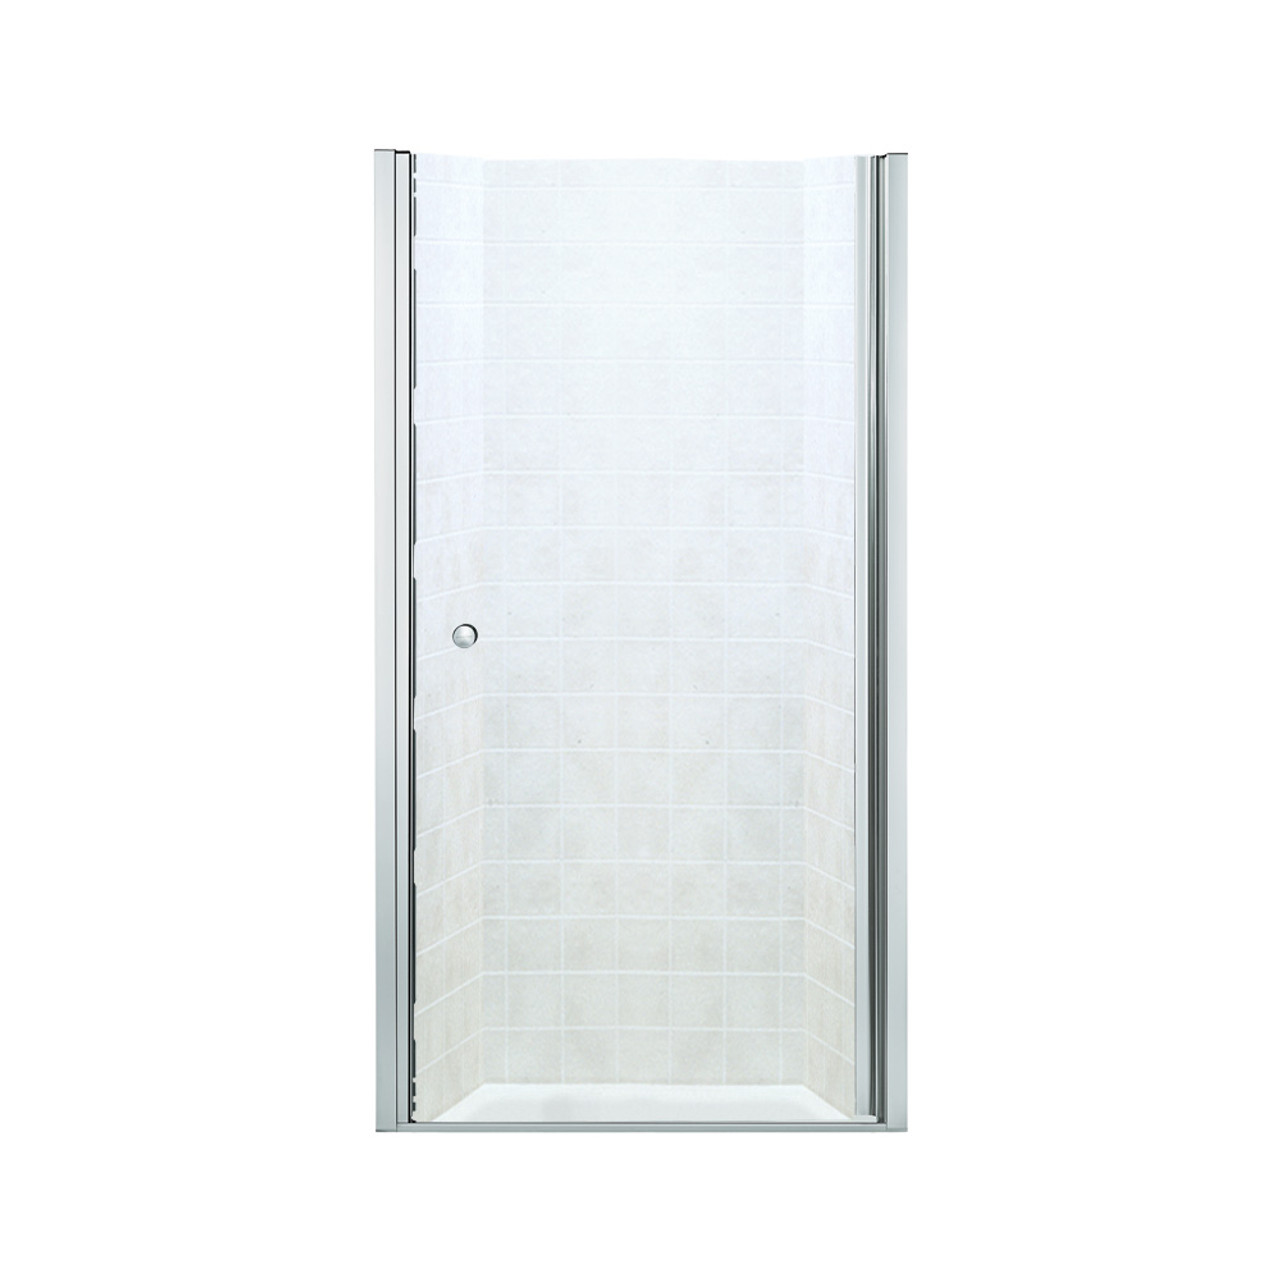 Sterling 6305 30s Finesse 28 3 4 In X 30 1 4 In Frameless Hinged Alcove Shower Door With Clear Glass